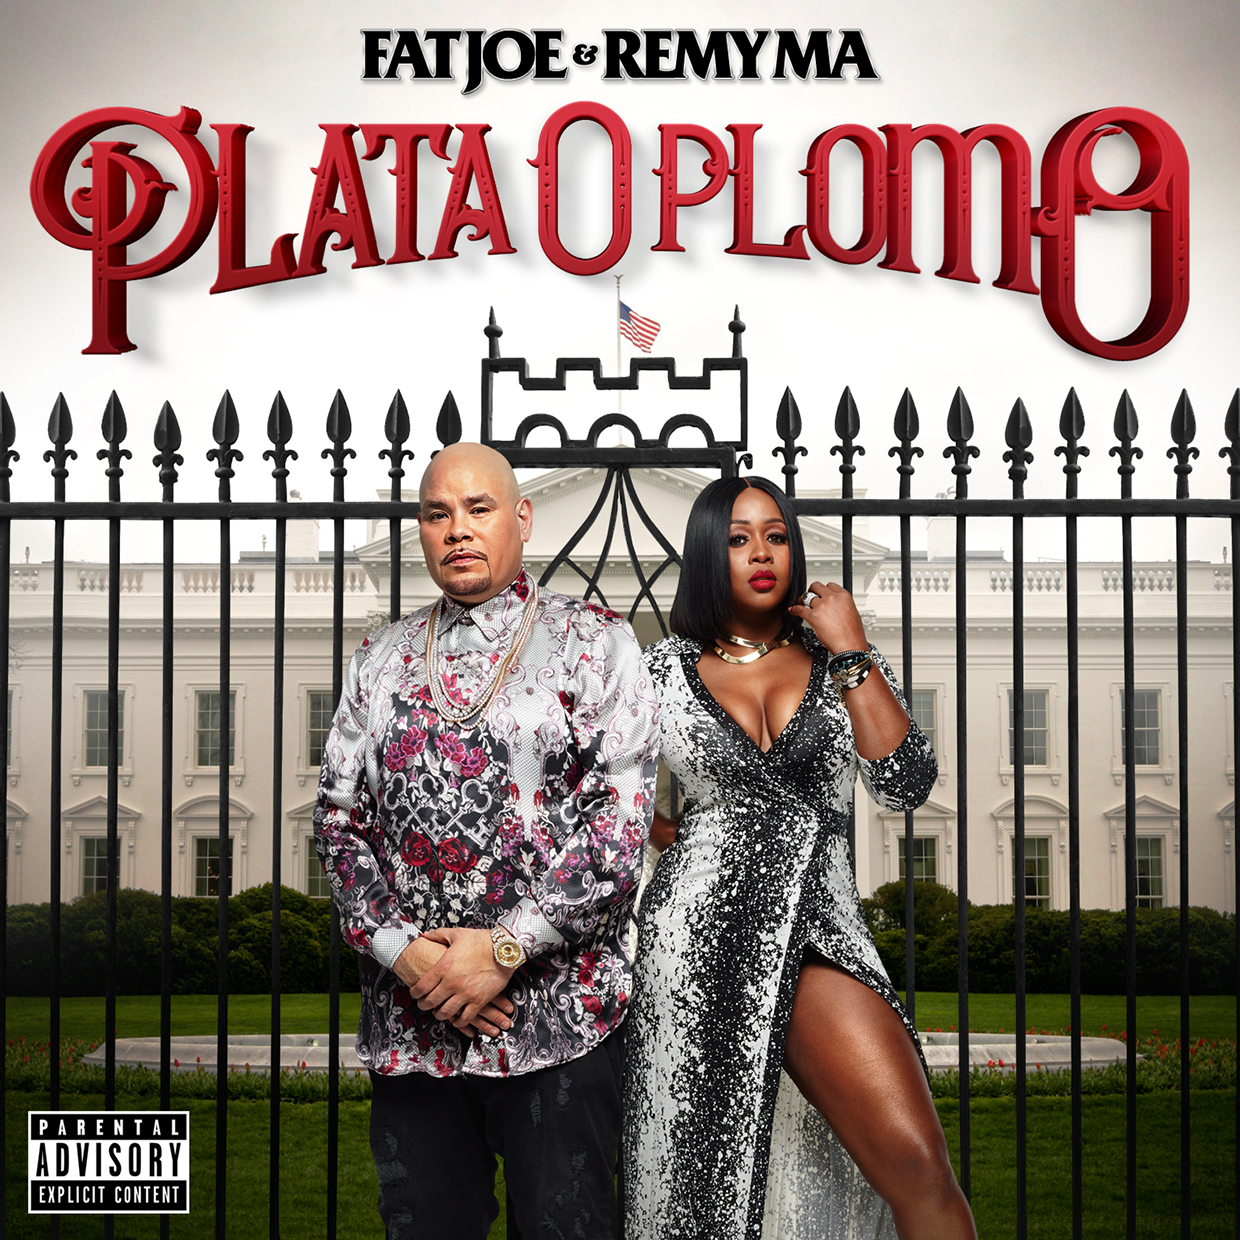 Plata O Plomo Album Review